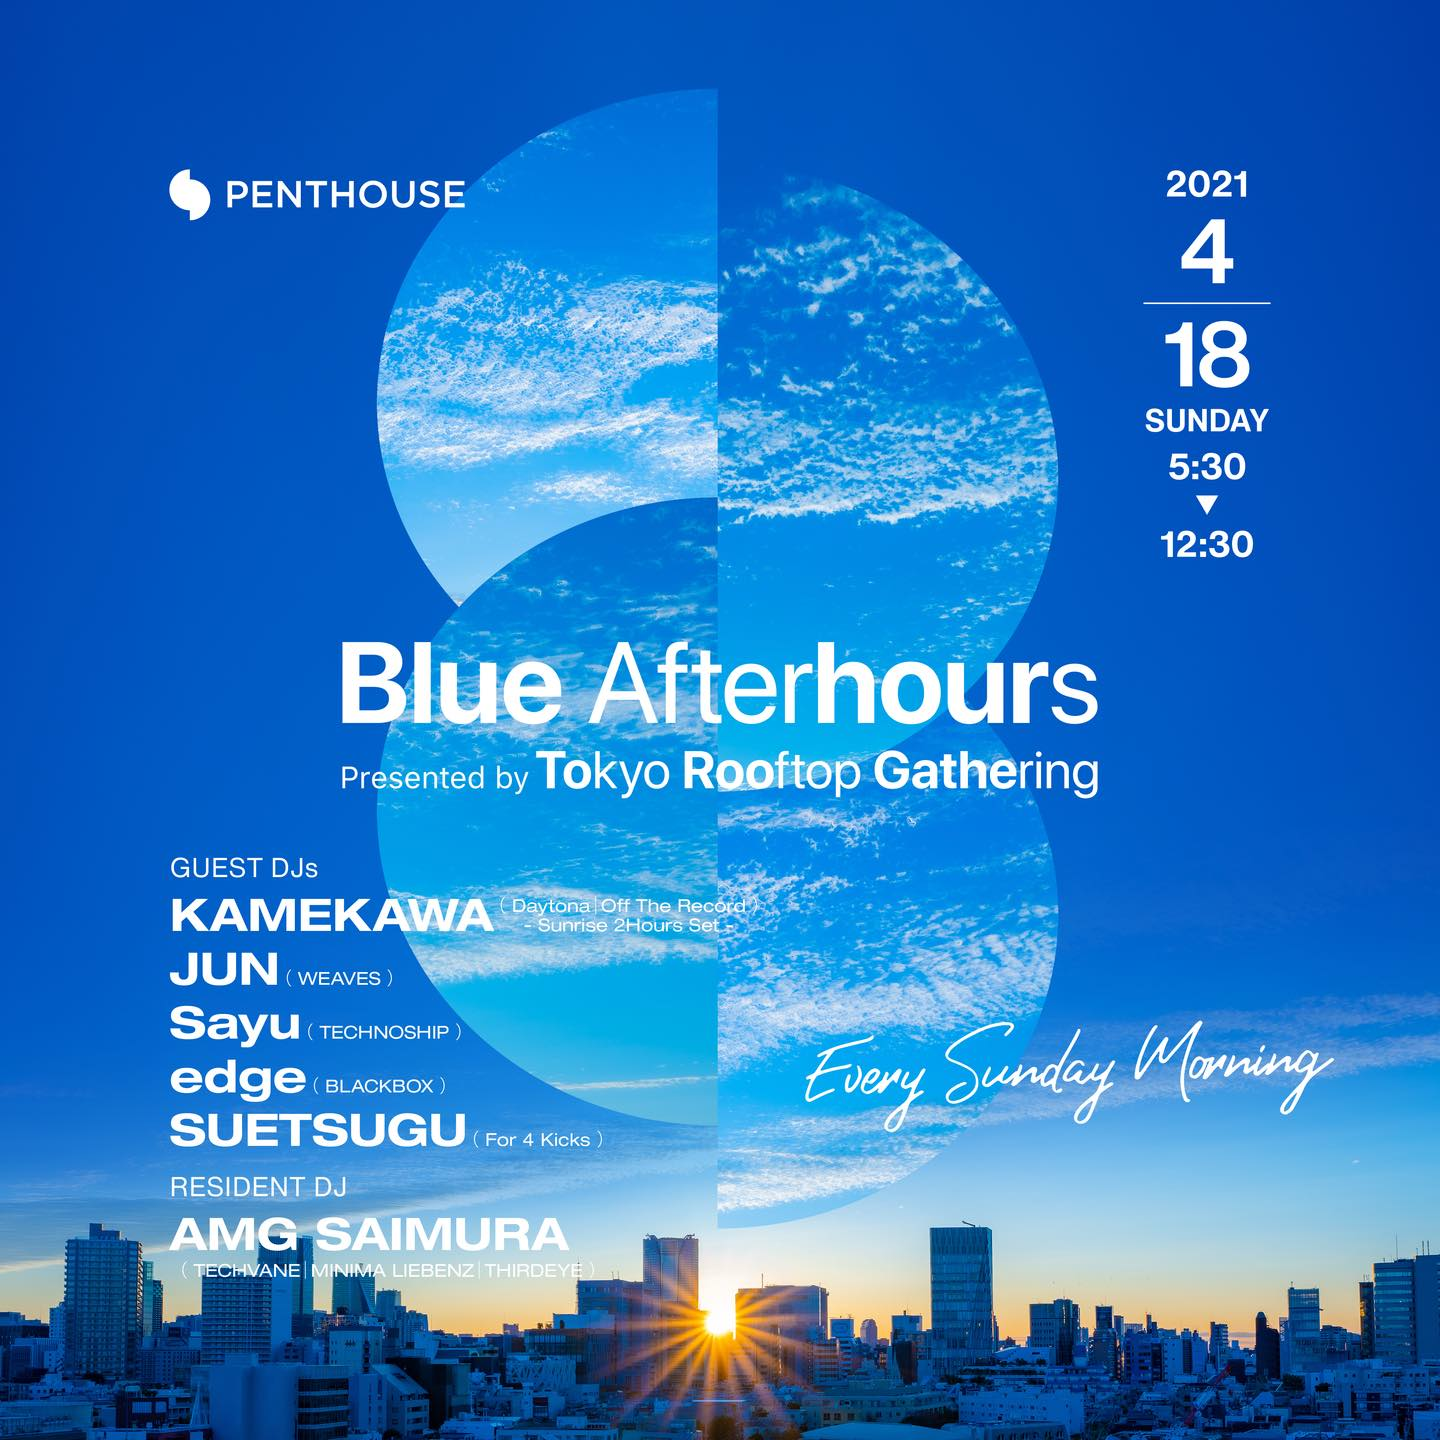 Blue Afterhours by Tokyo Rooftop Gathering